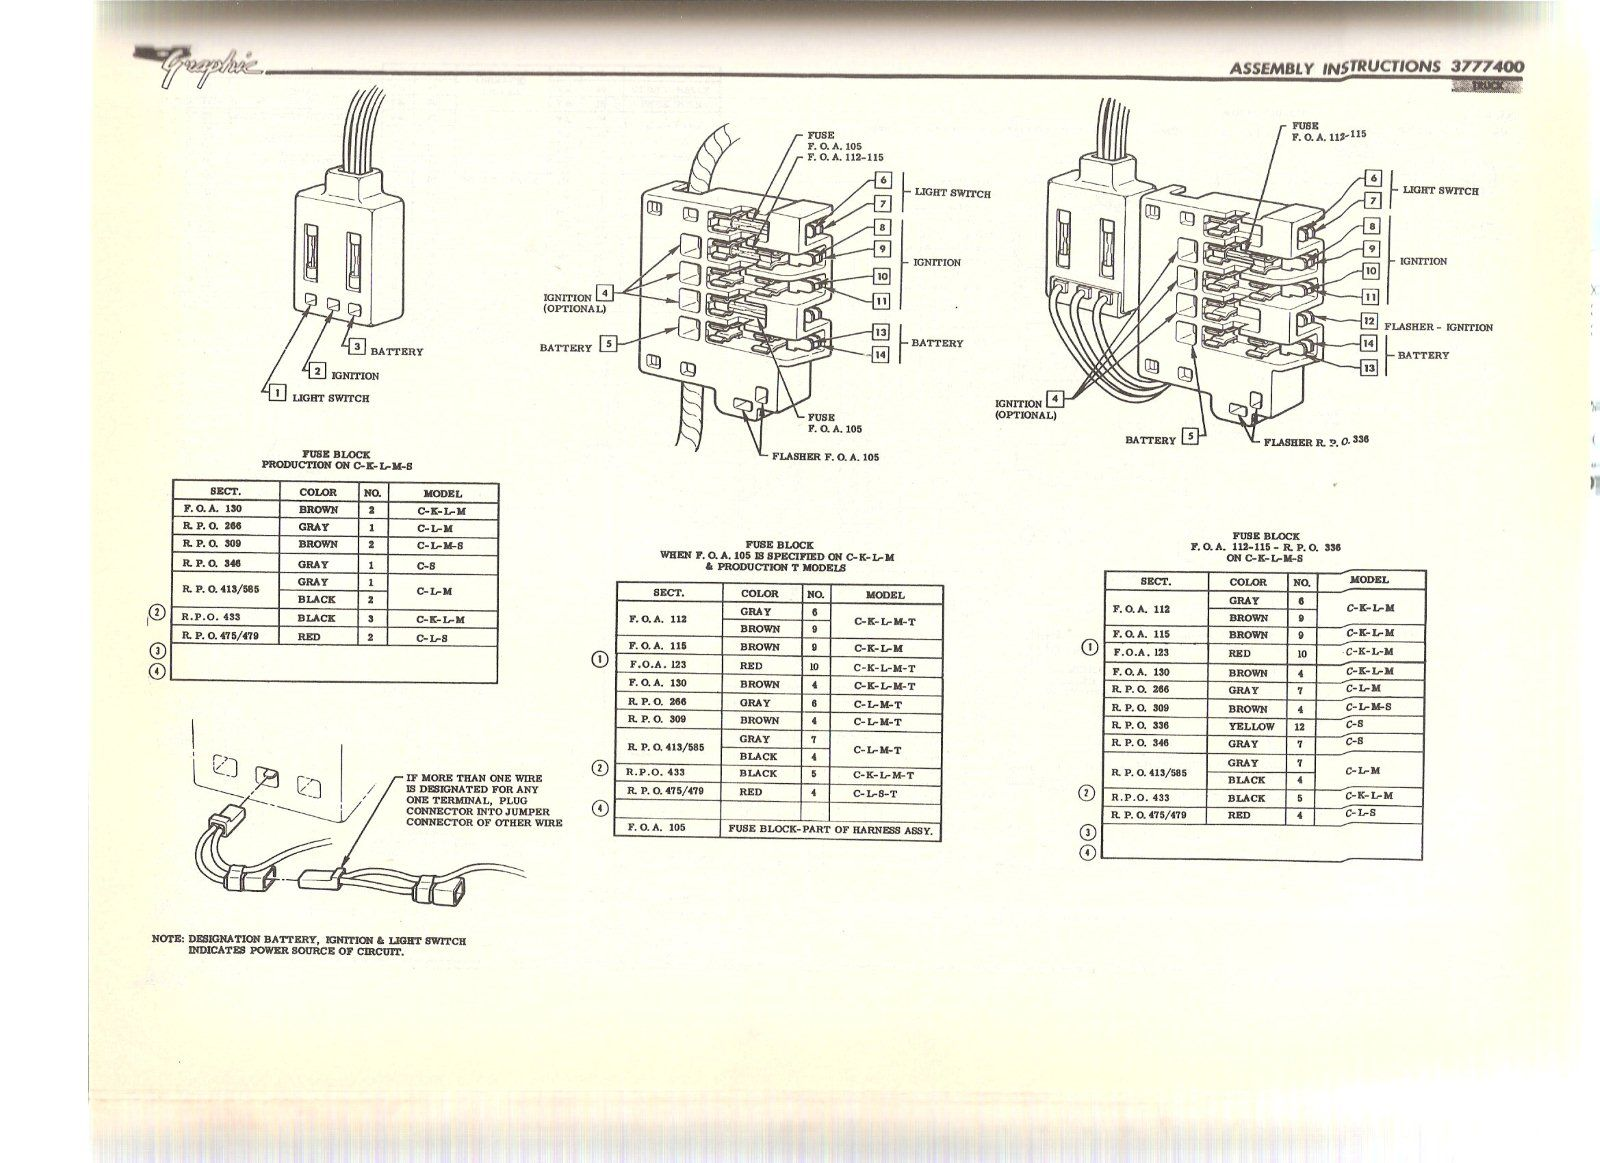 1986 Chevy Truck Ignition Switch Wiring Diagram 1997 Jeep Wrangler Pdf C10 Instrument Cluster 48